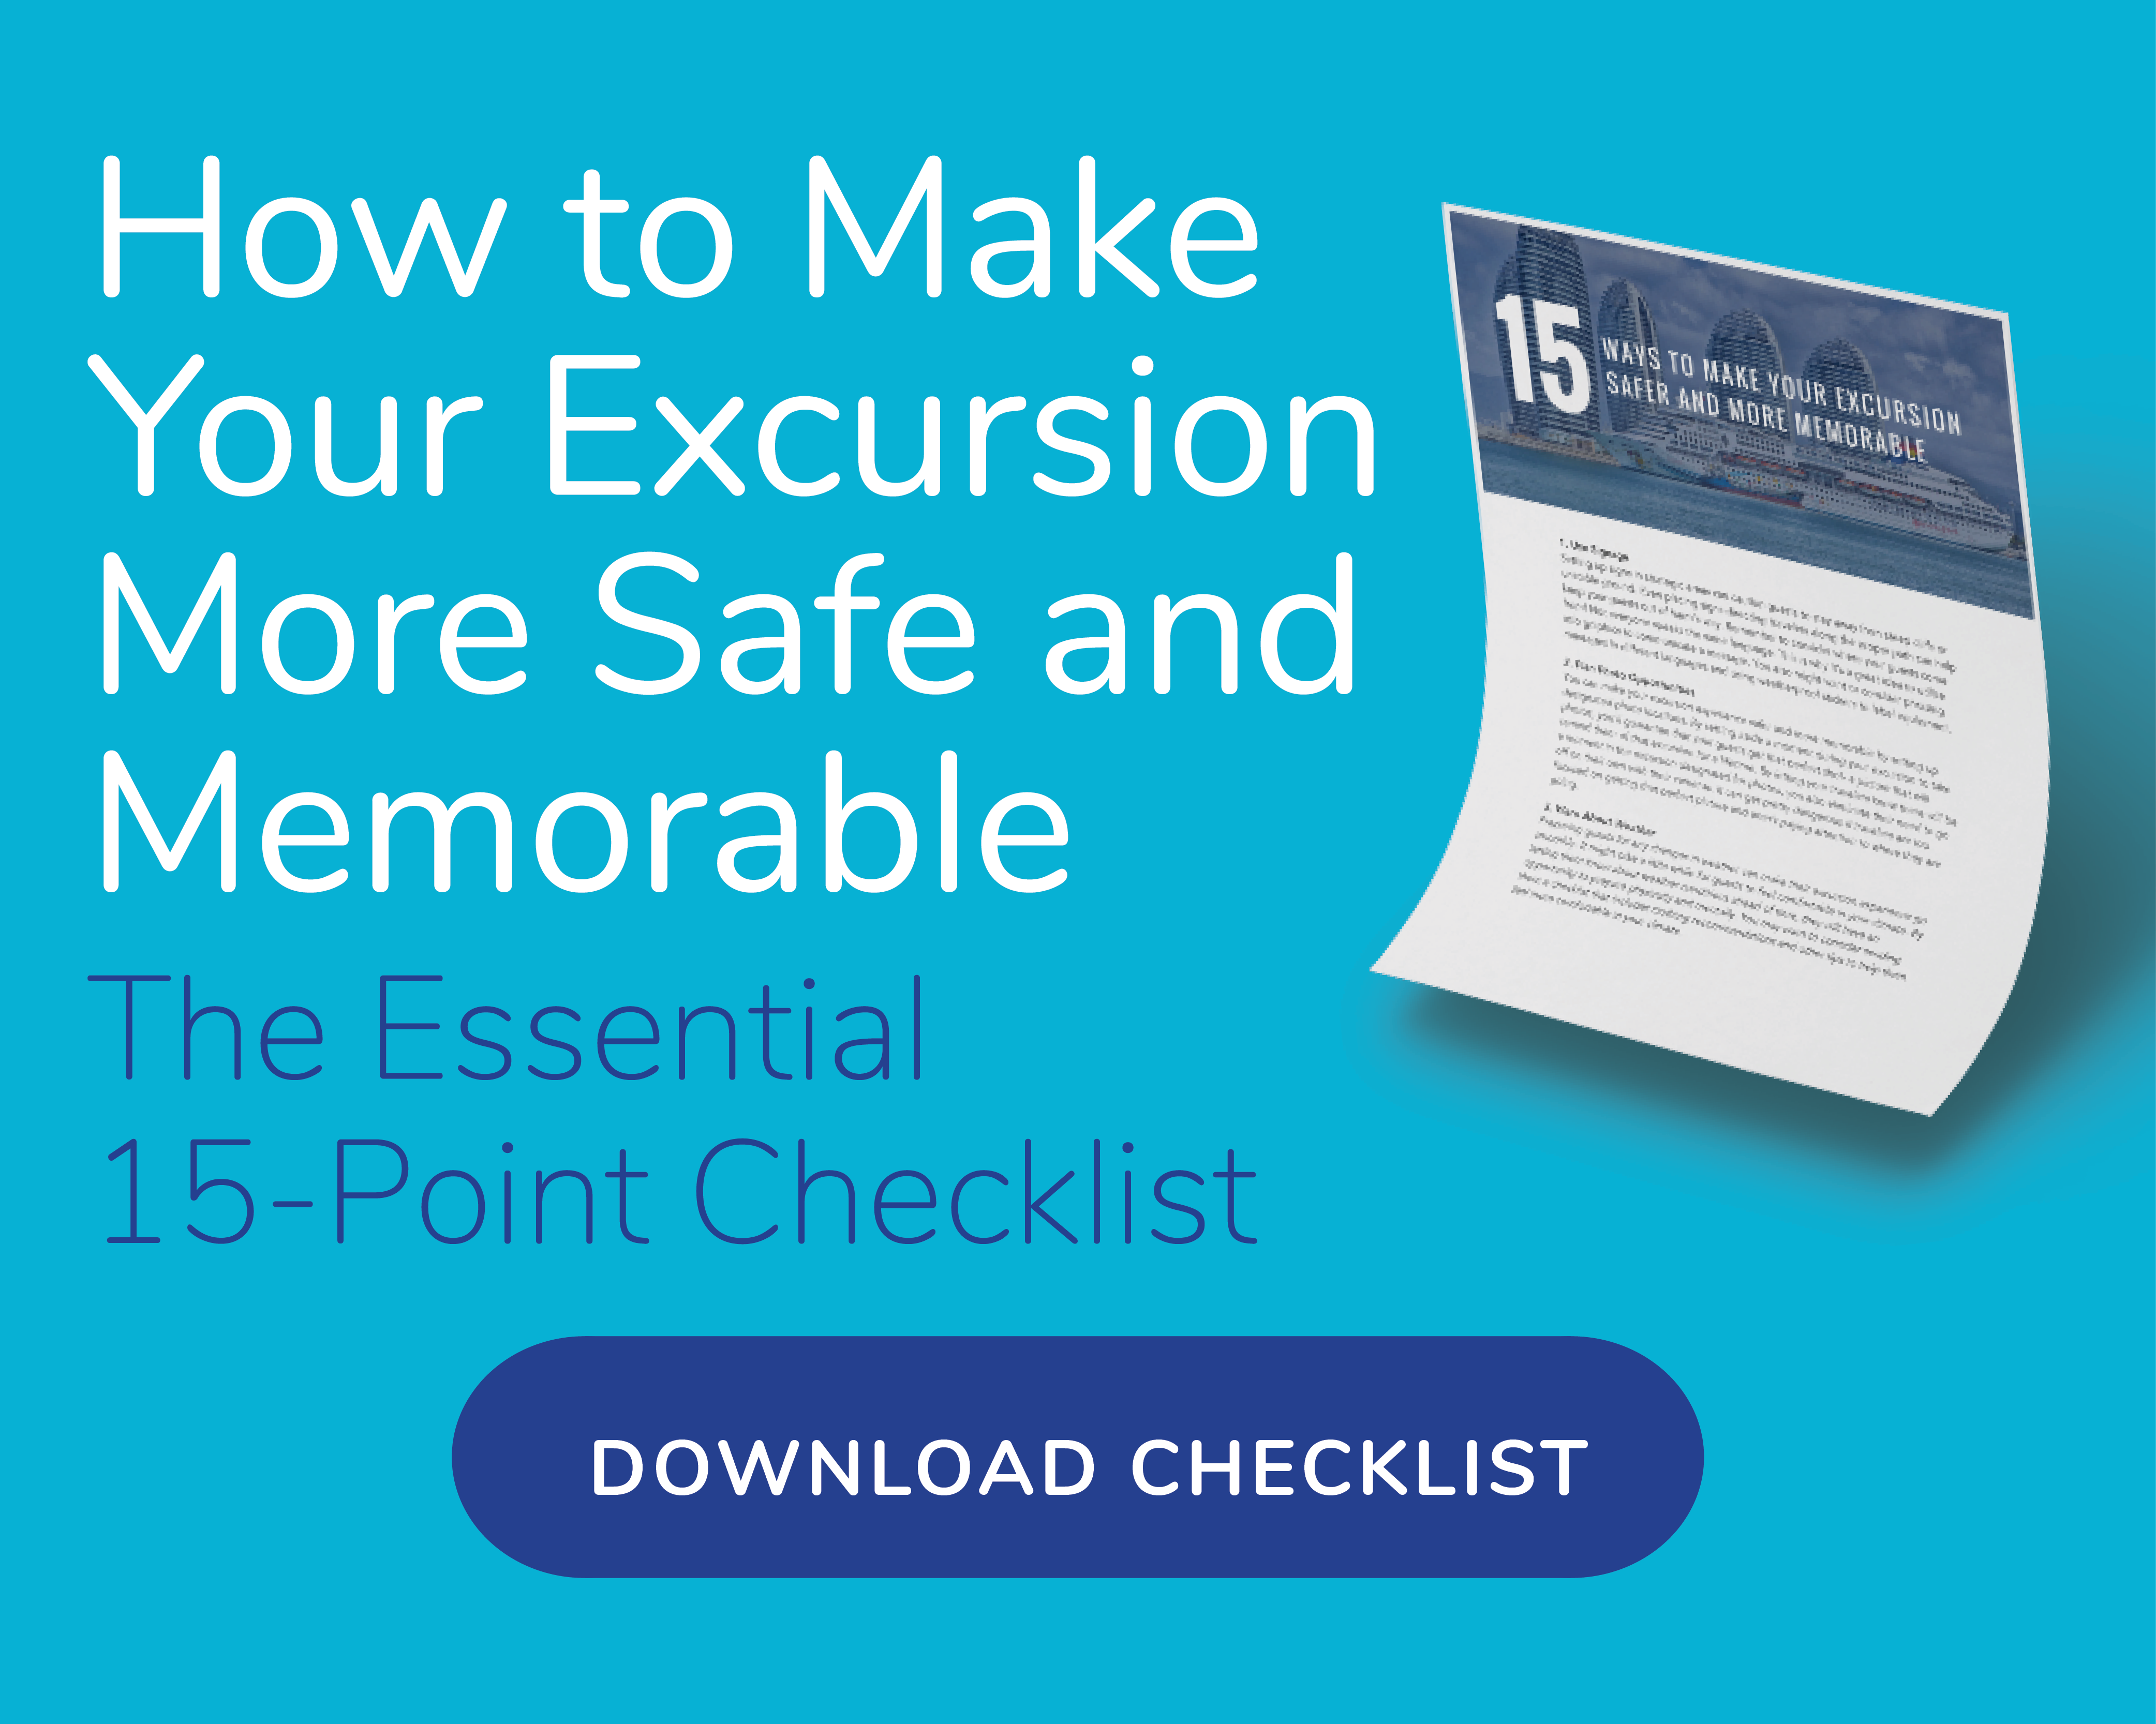 15 Ways to Make Your Excursion Safer and More Memorable